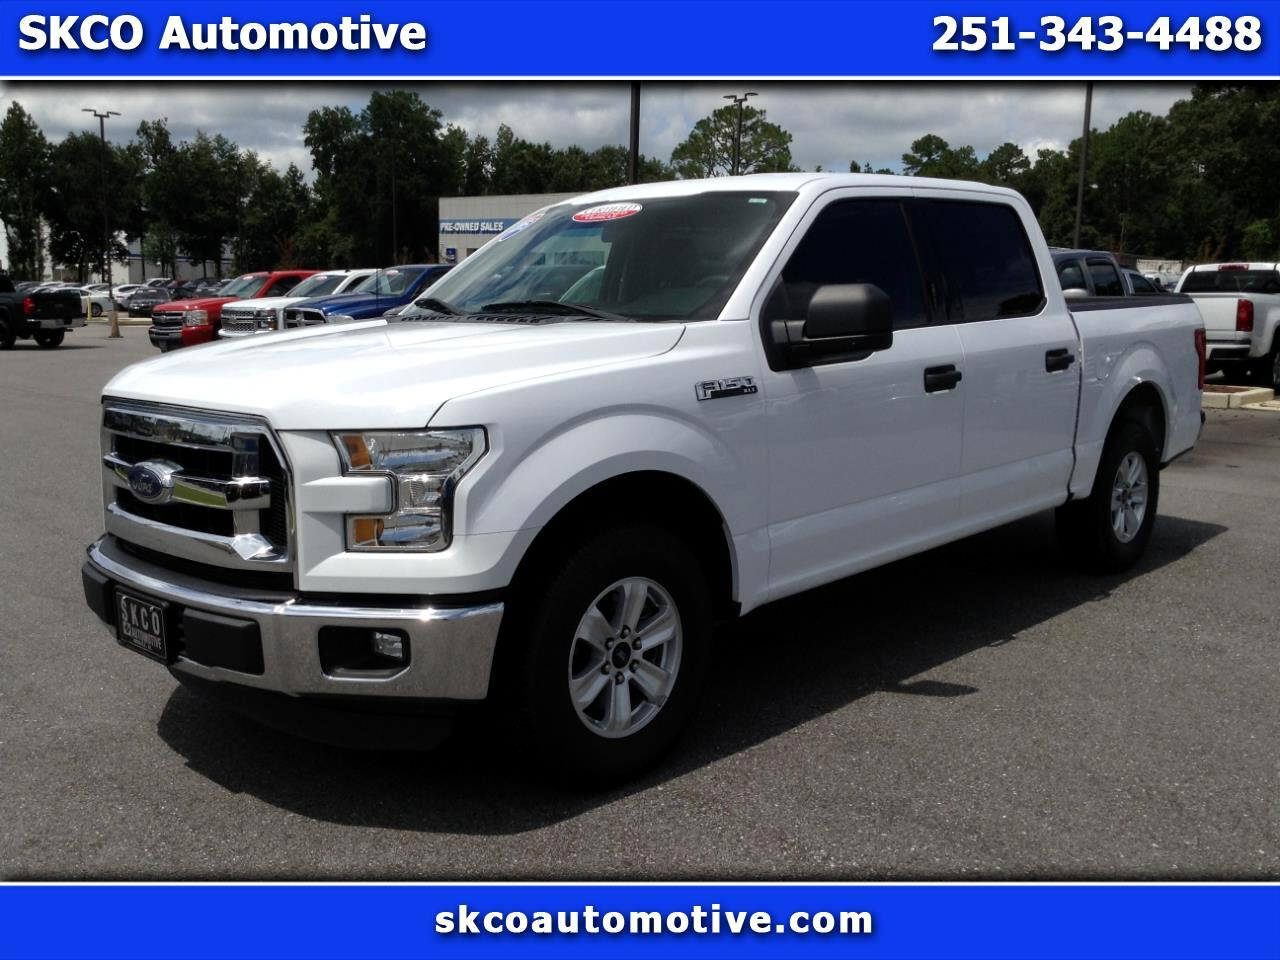 2015 Ford F-150 2WD SuperCrew 145